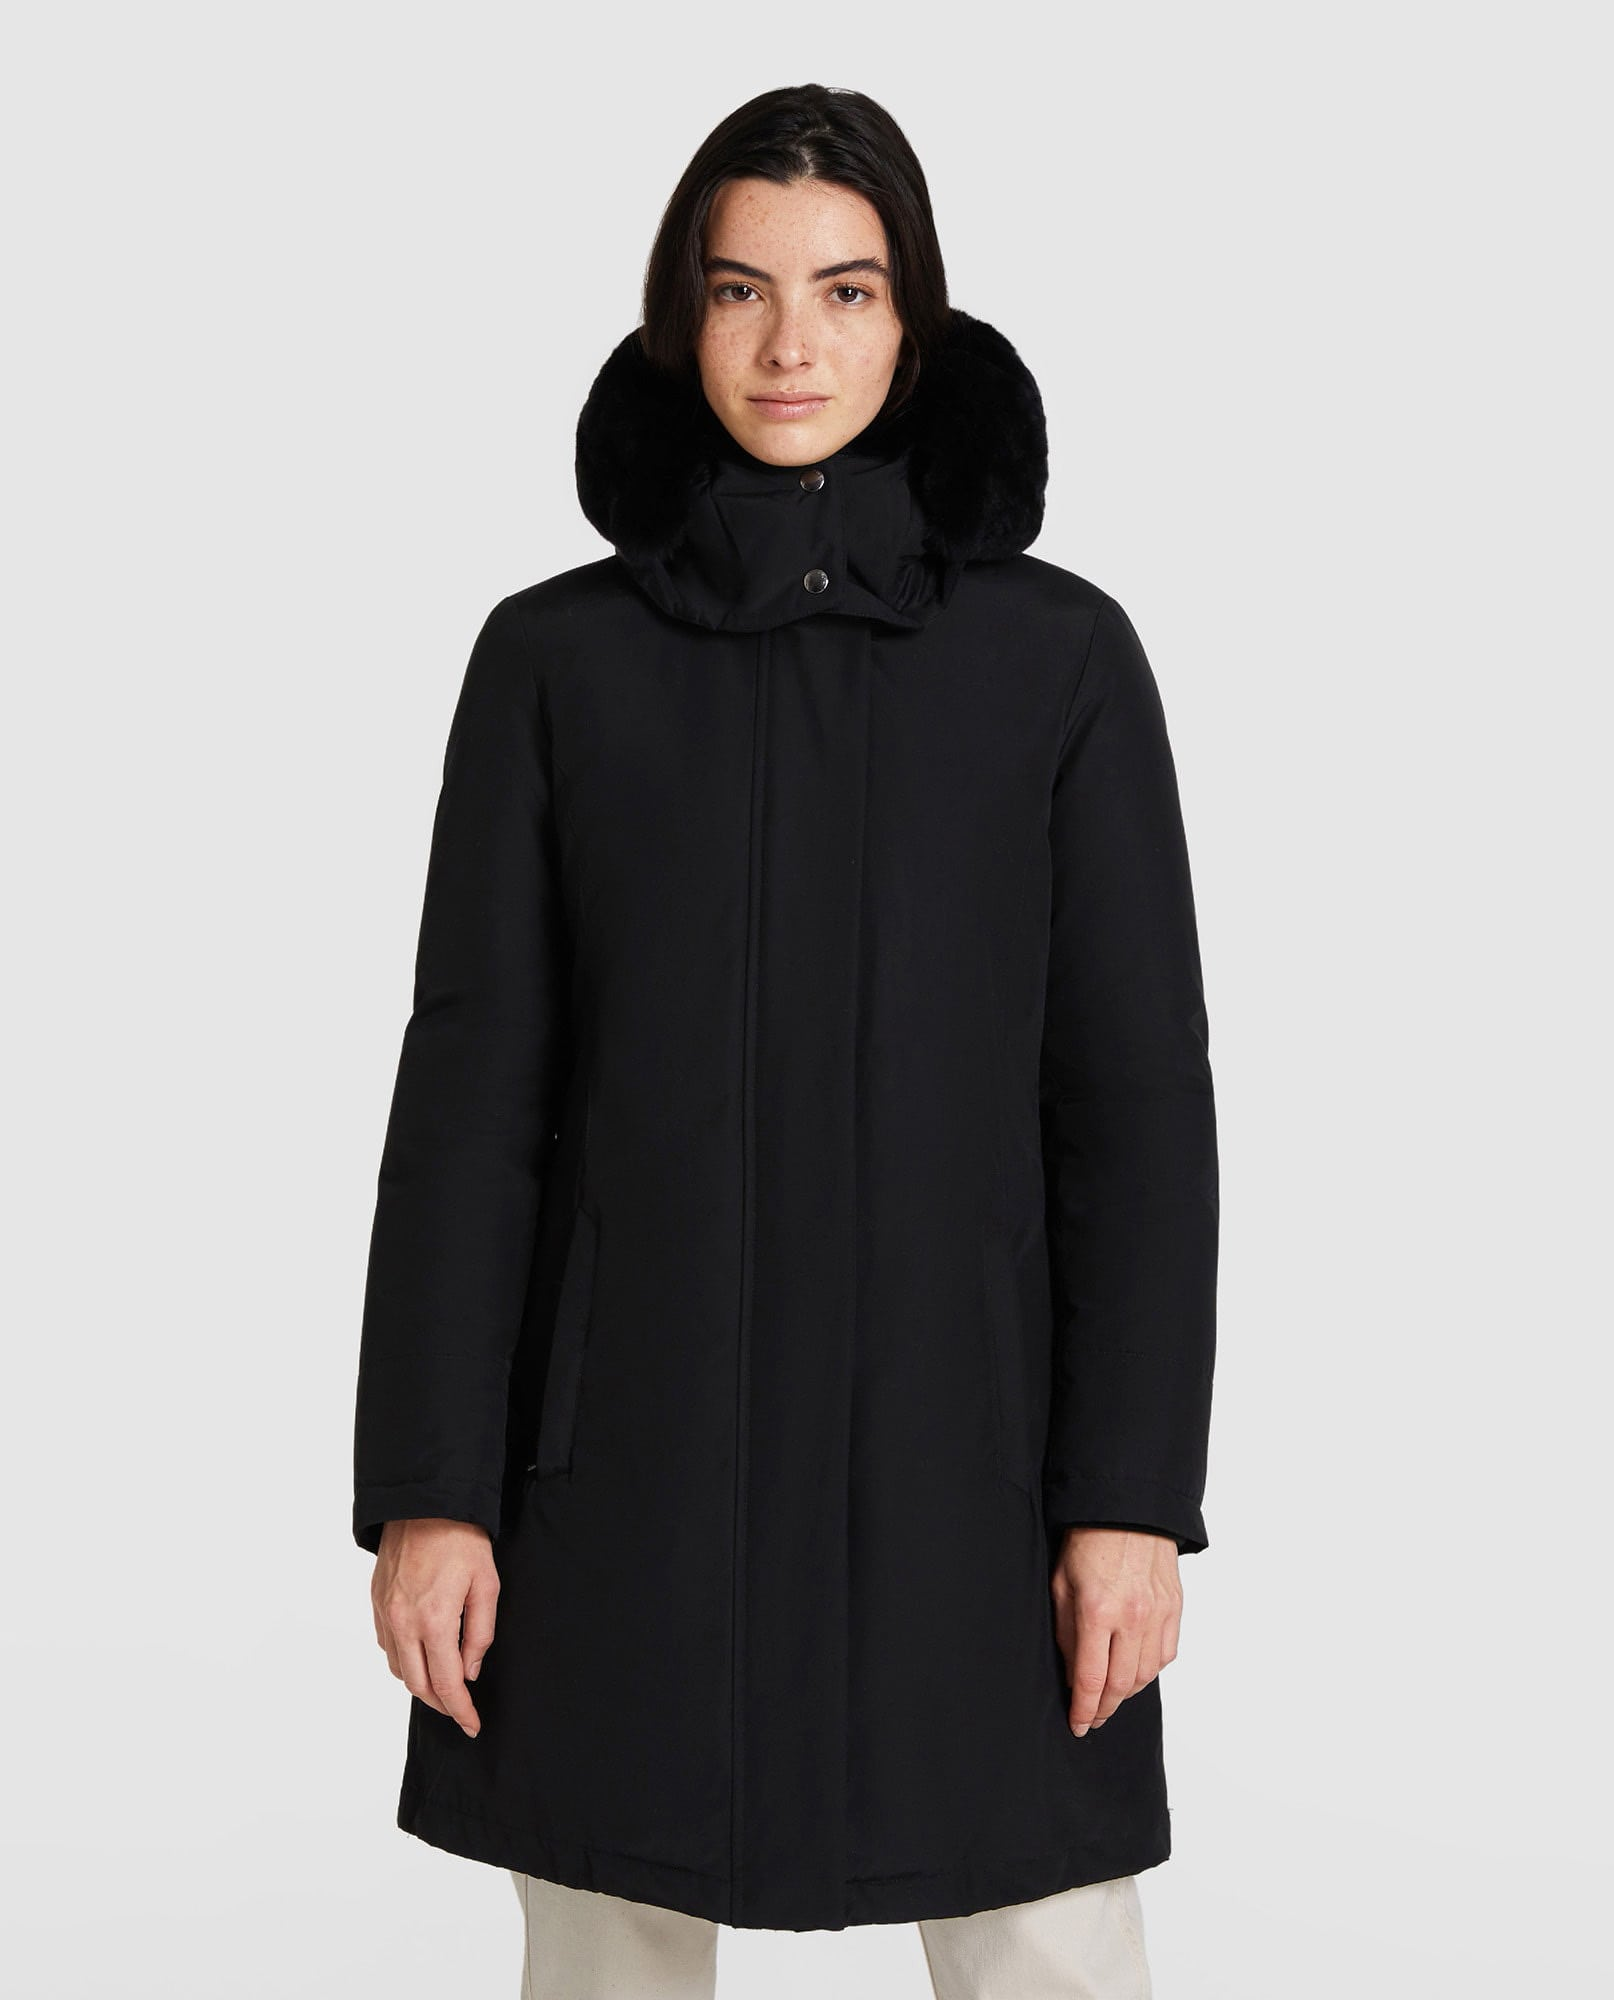 BOW BRIDGE COAT